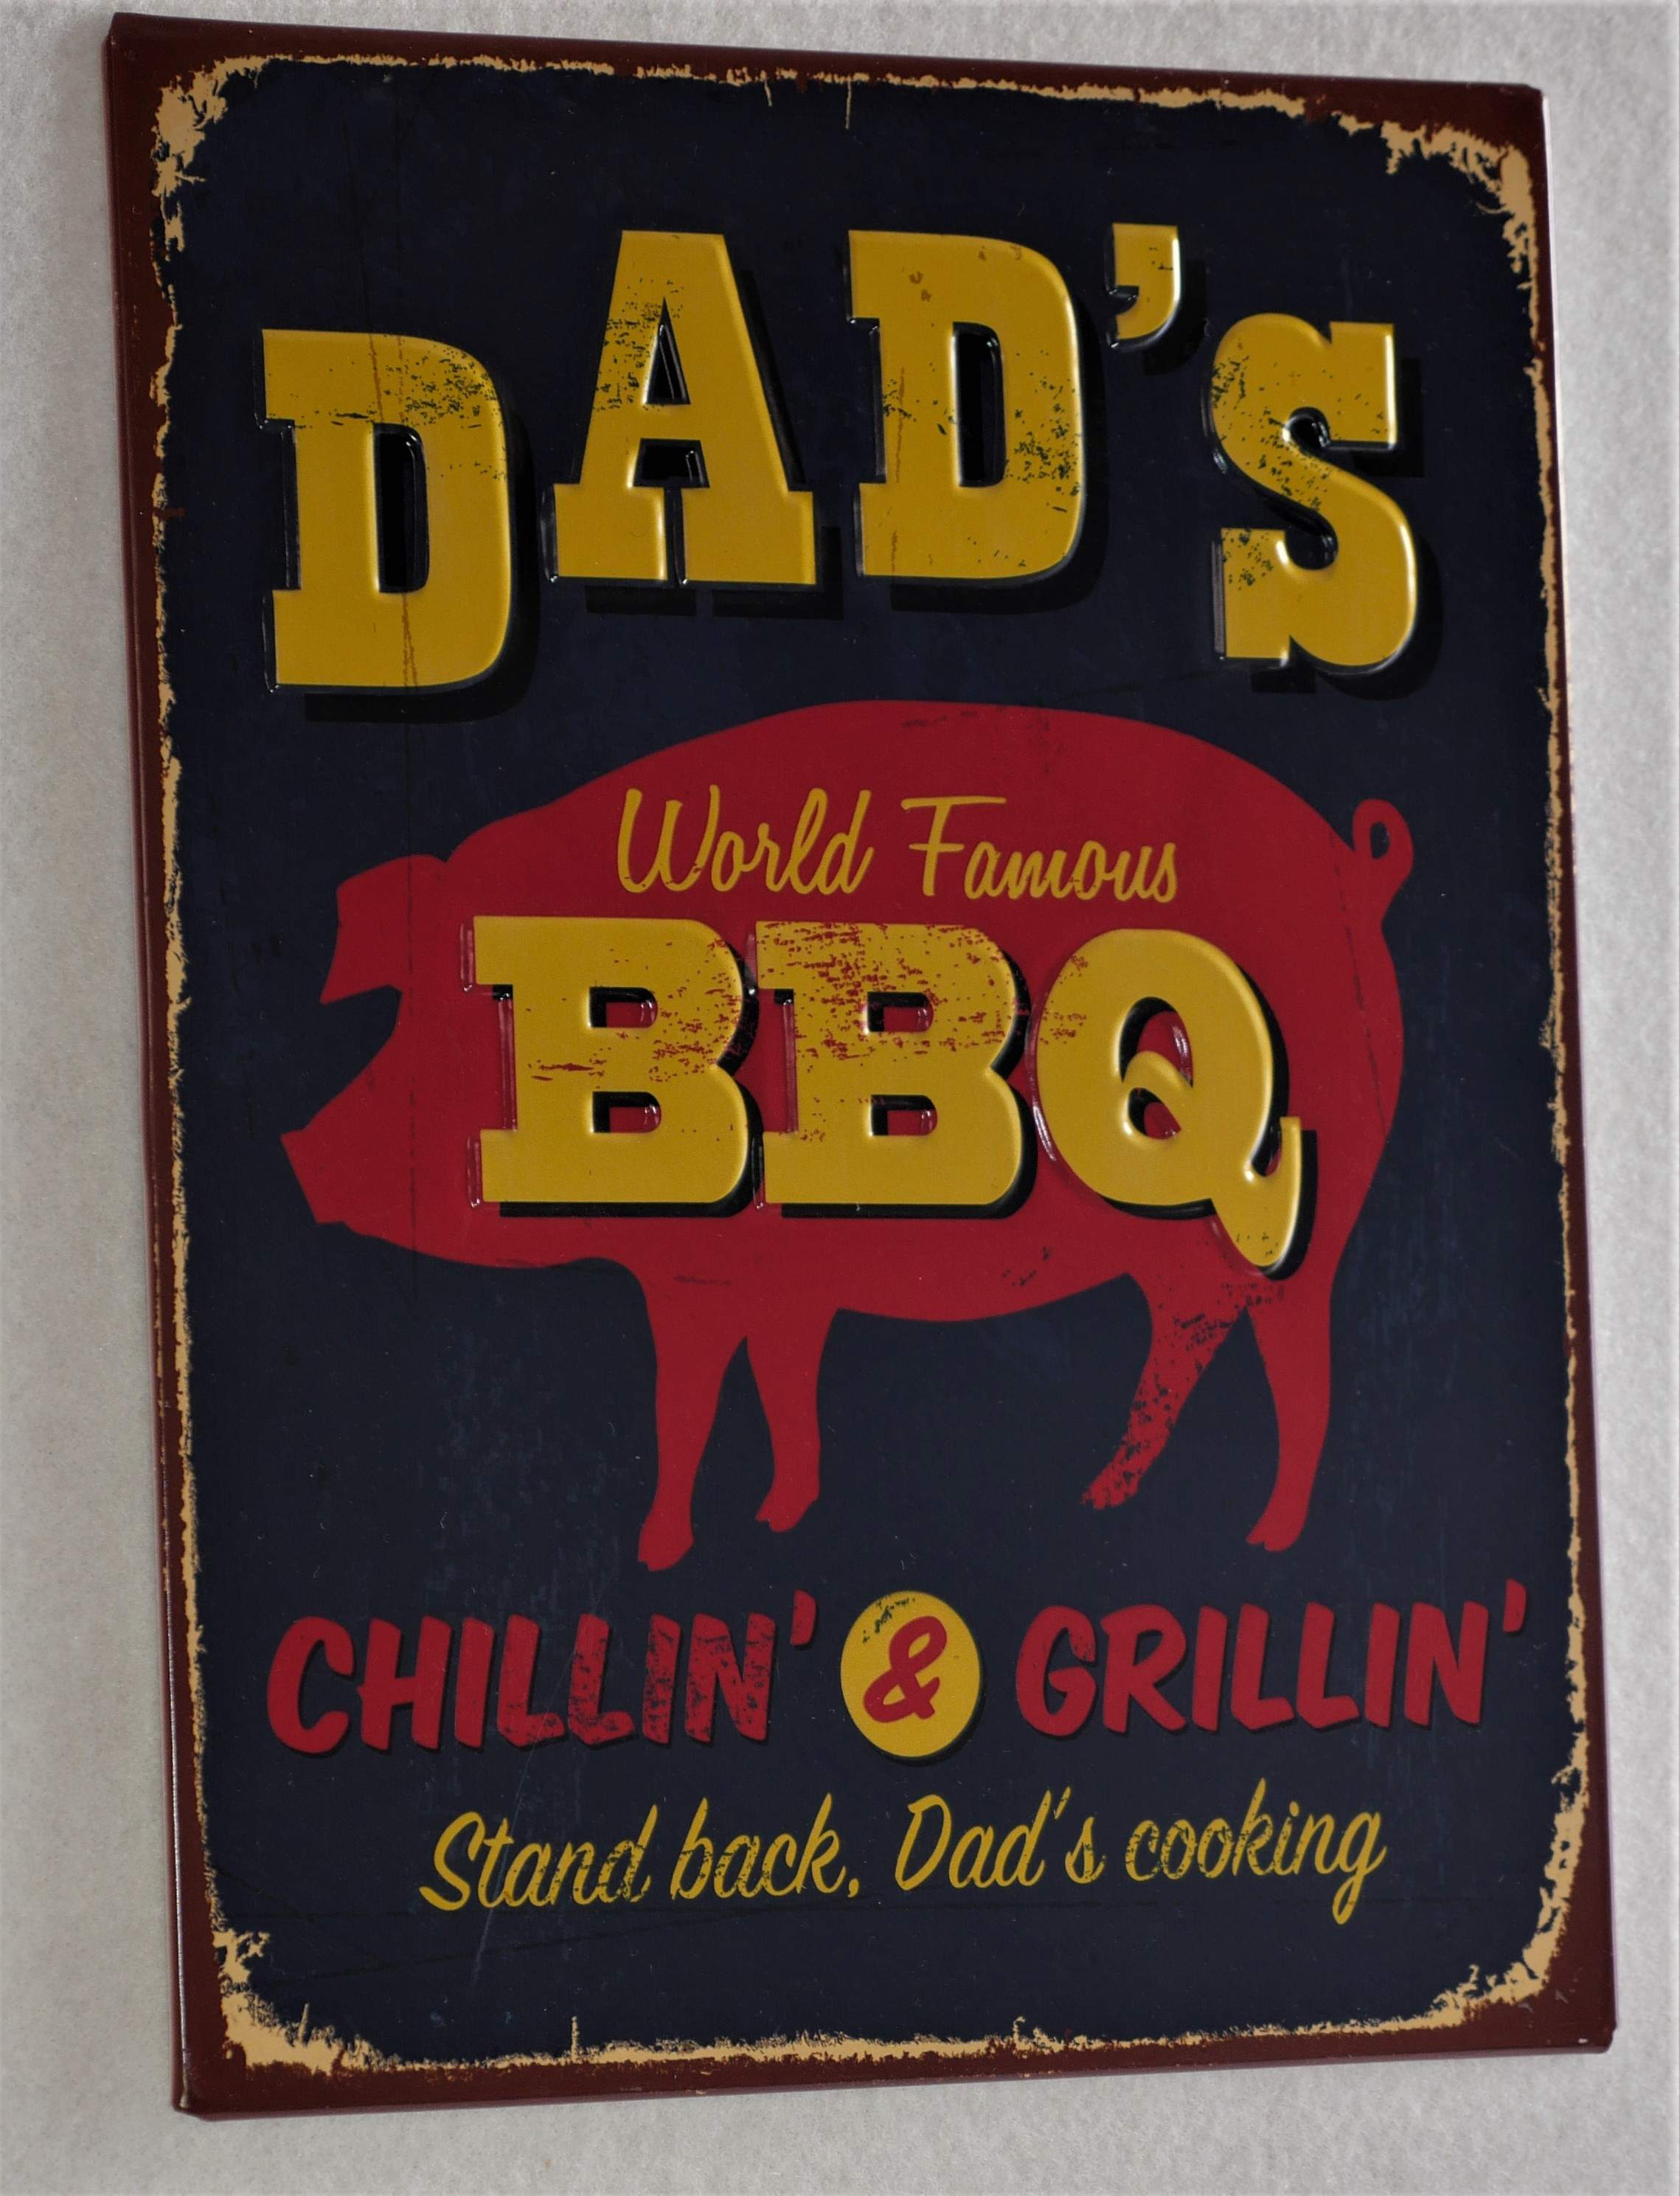 Metal Dad's barbecue wall sign.